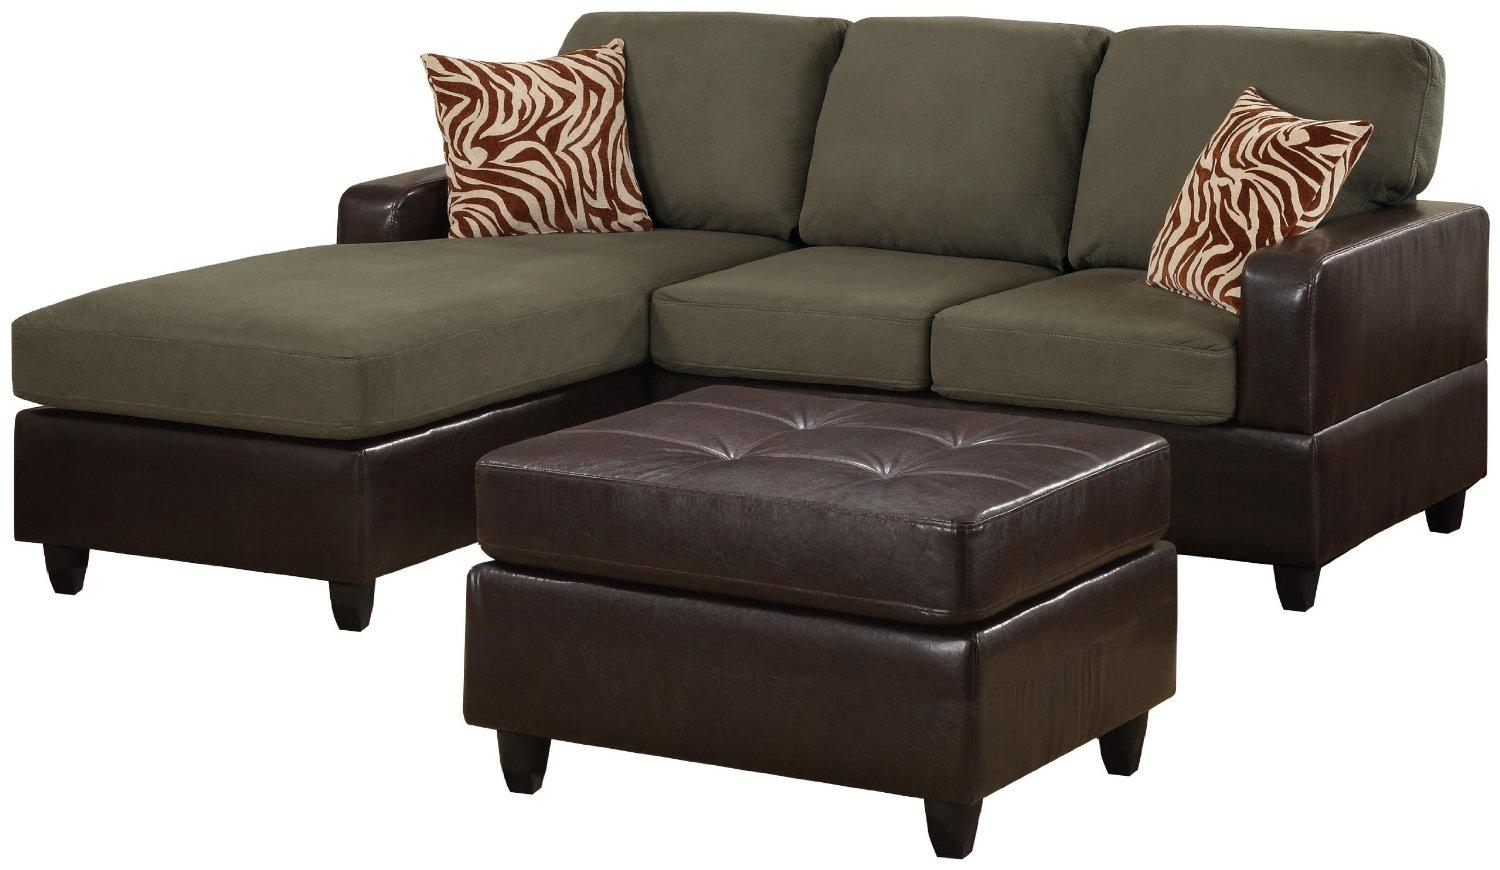 Sofas Center : Cheaper Sofas Indianapolis Orange For Sale In Sofas Indianapolis (Image 6 of 20)